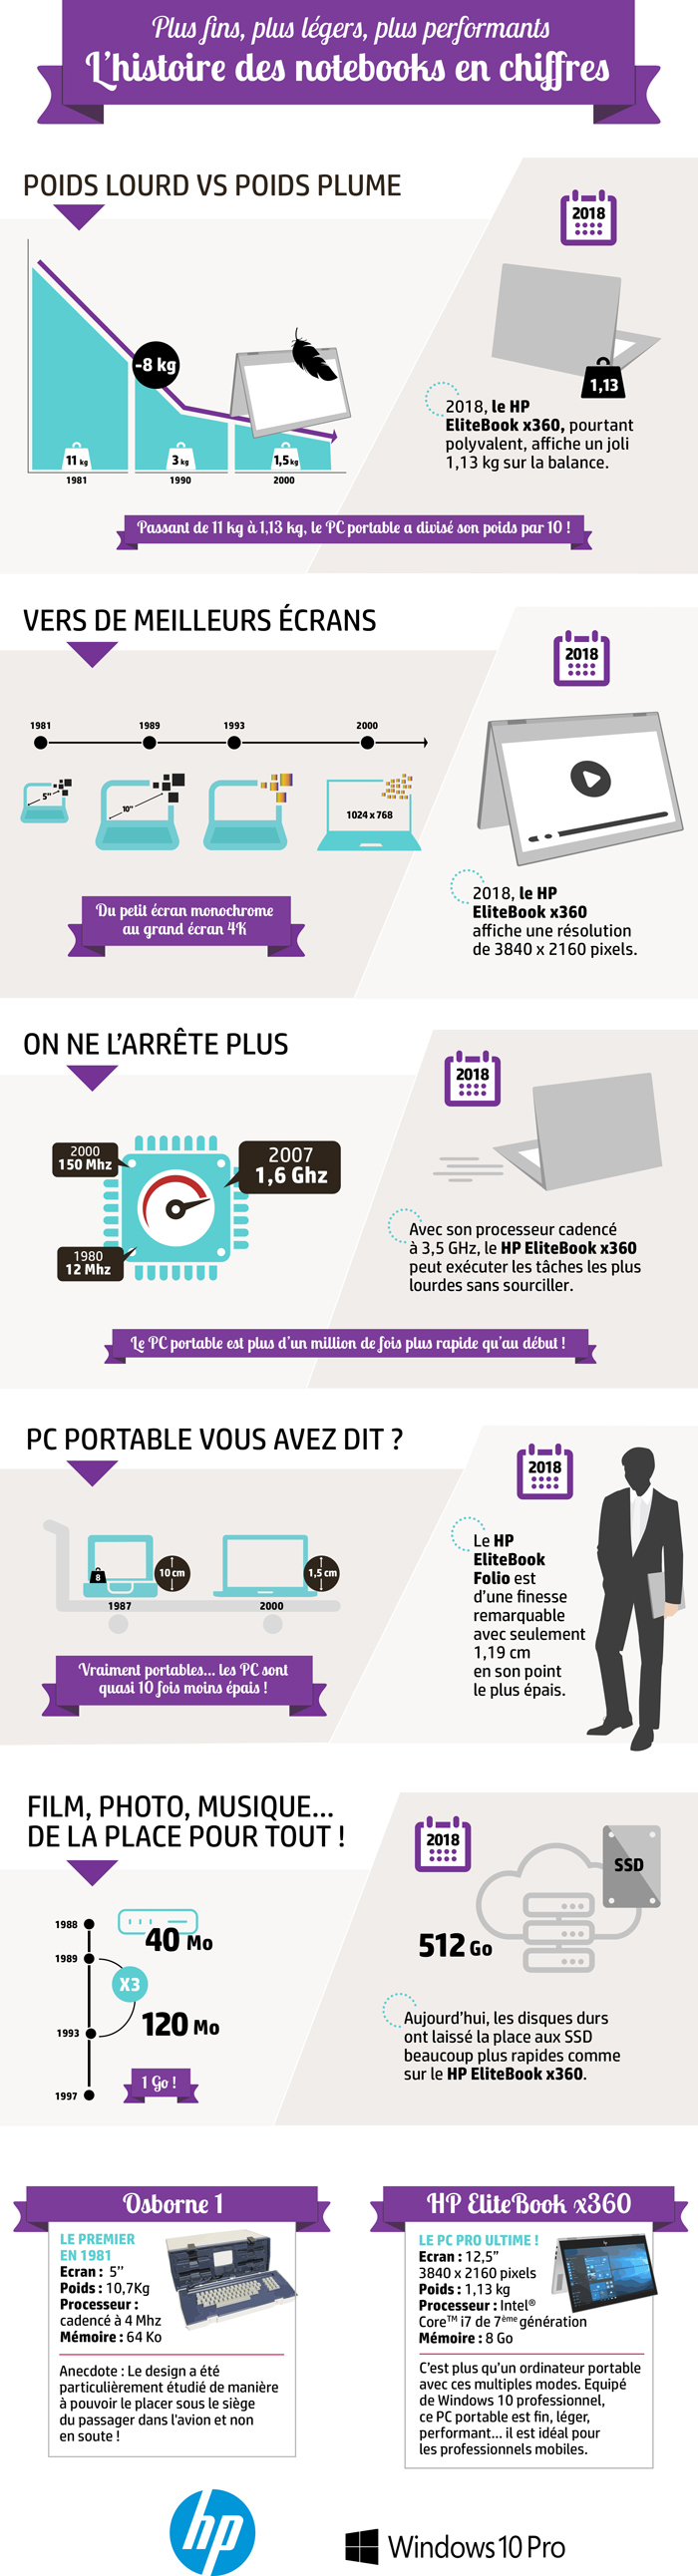 infographie histoire notebook HP